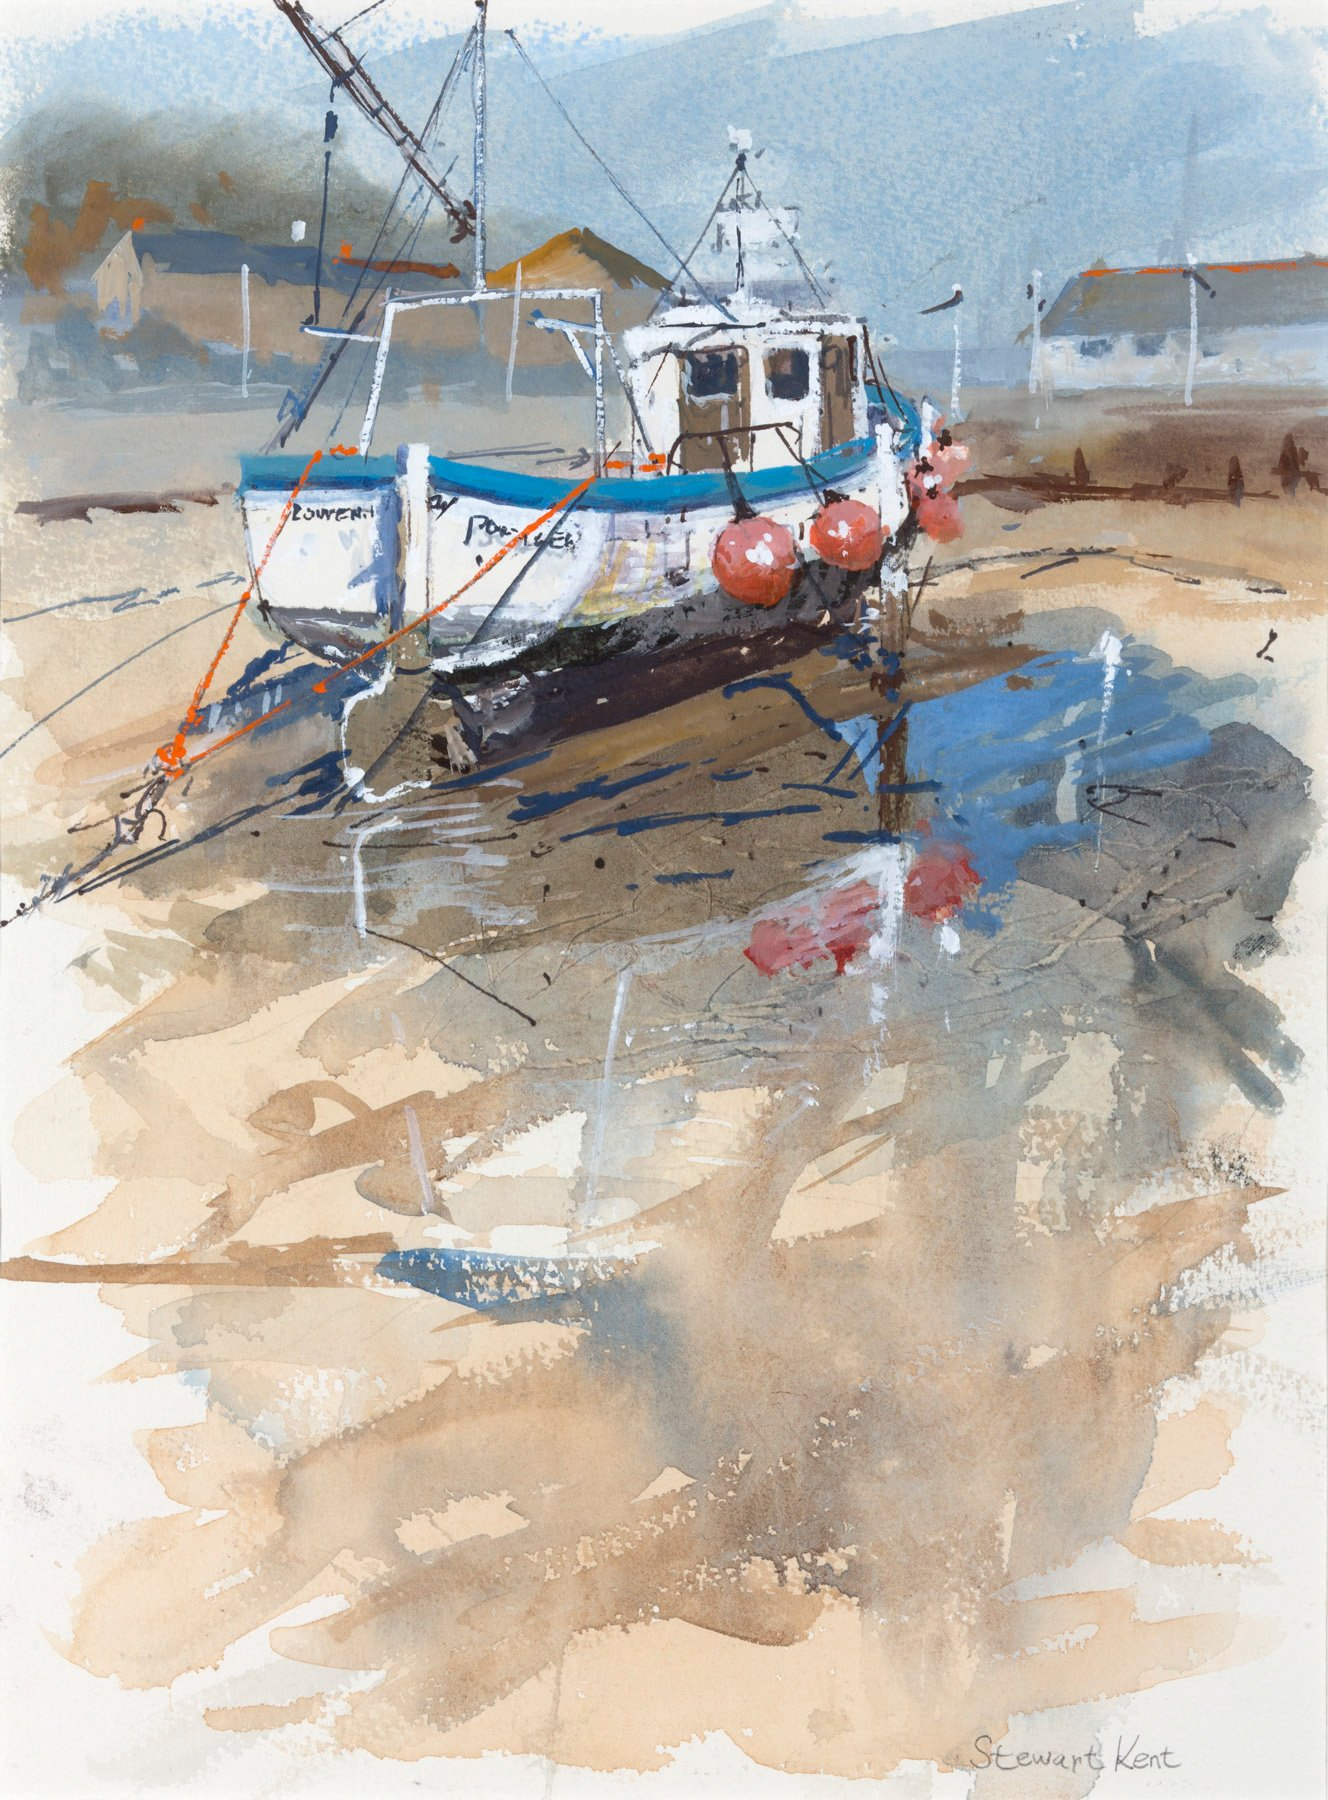 Lowena at Porthlevan by Stewart Kent